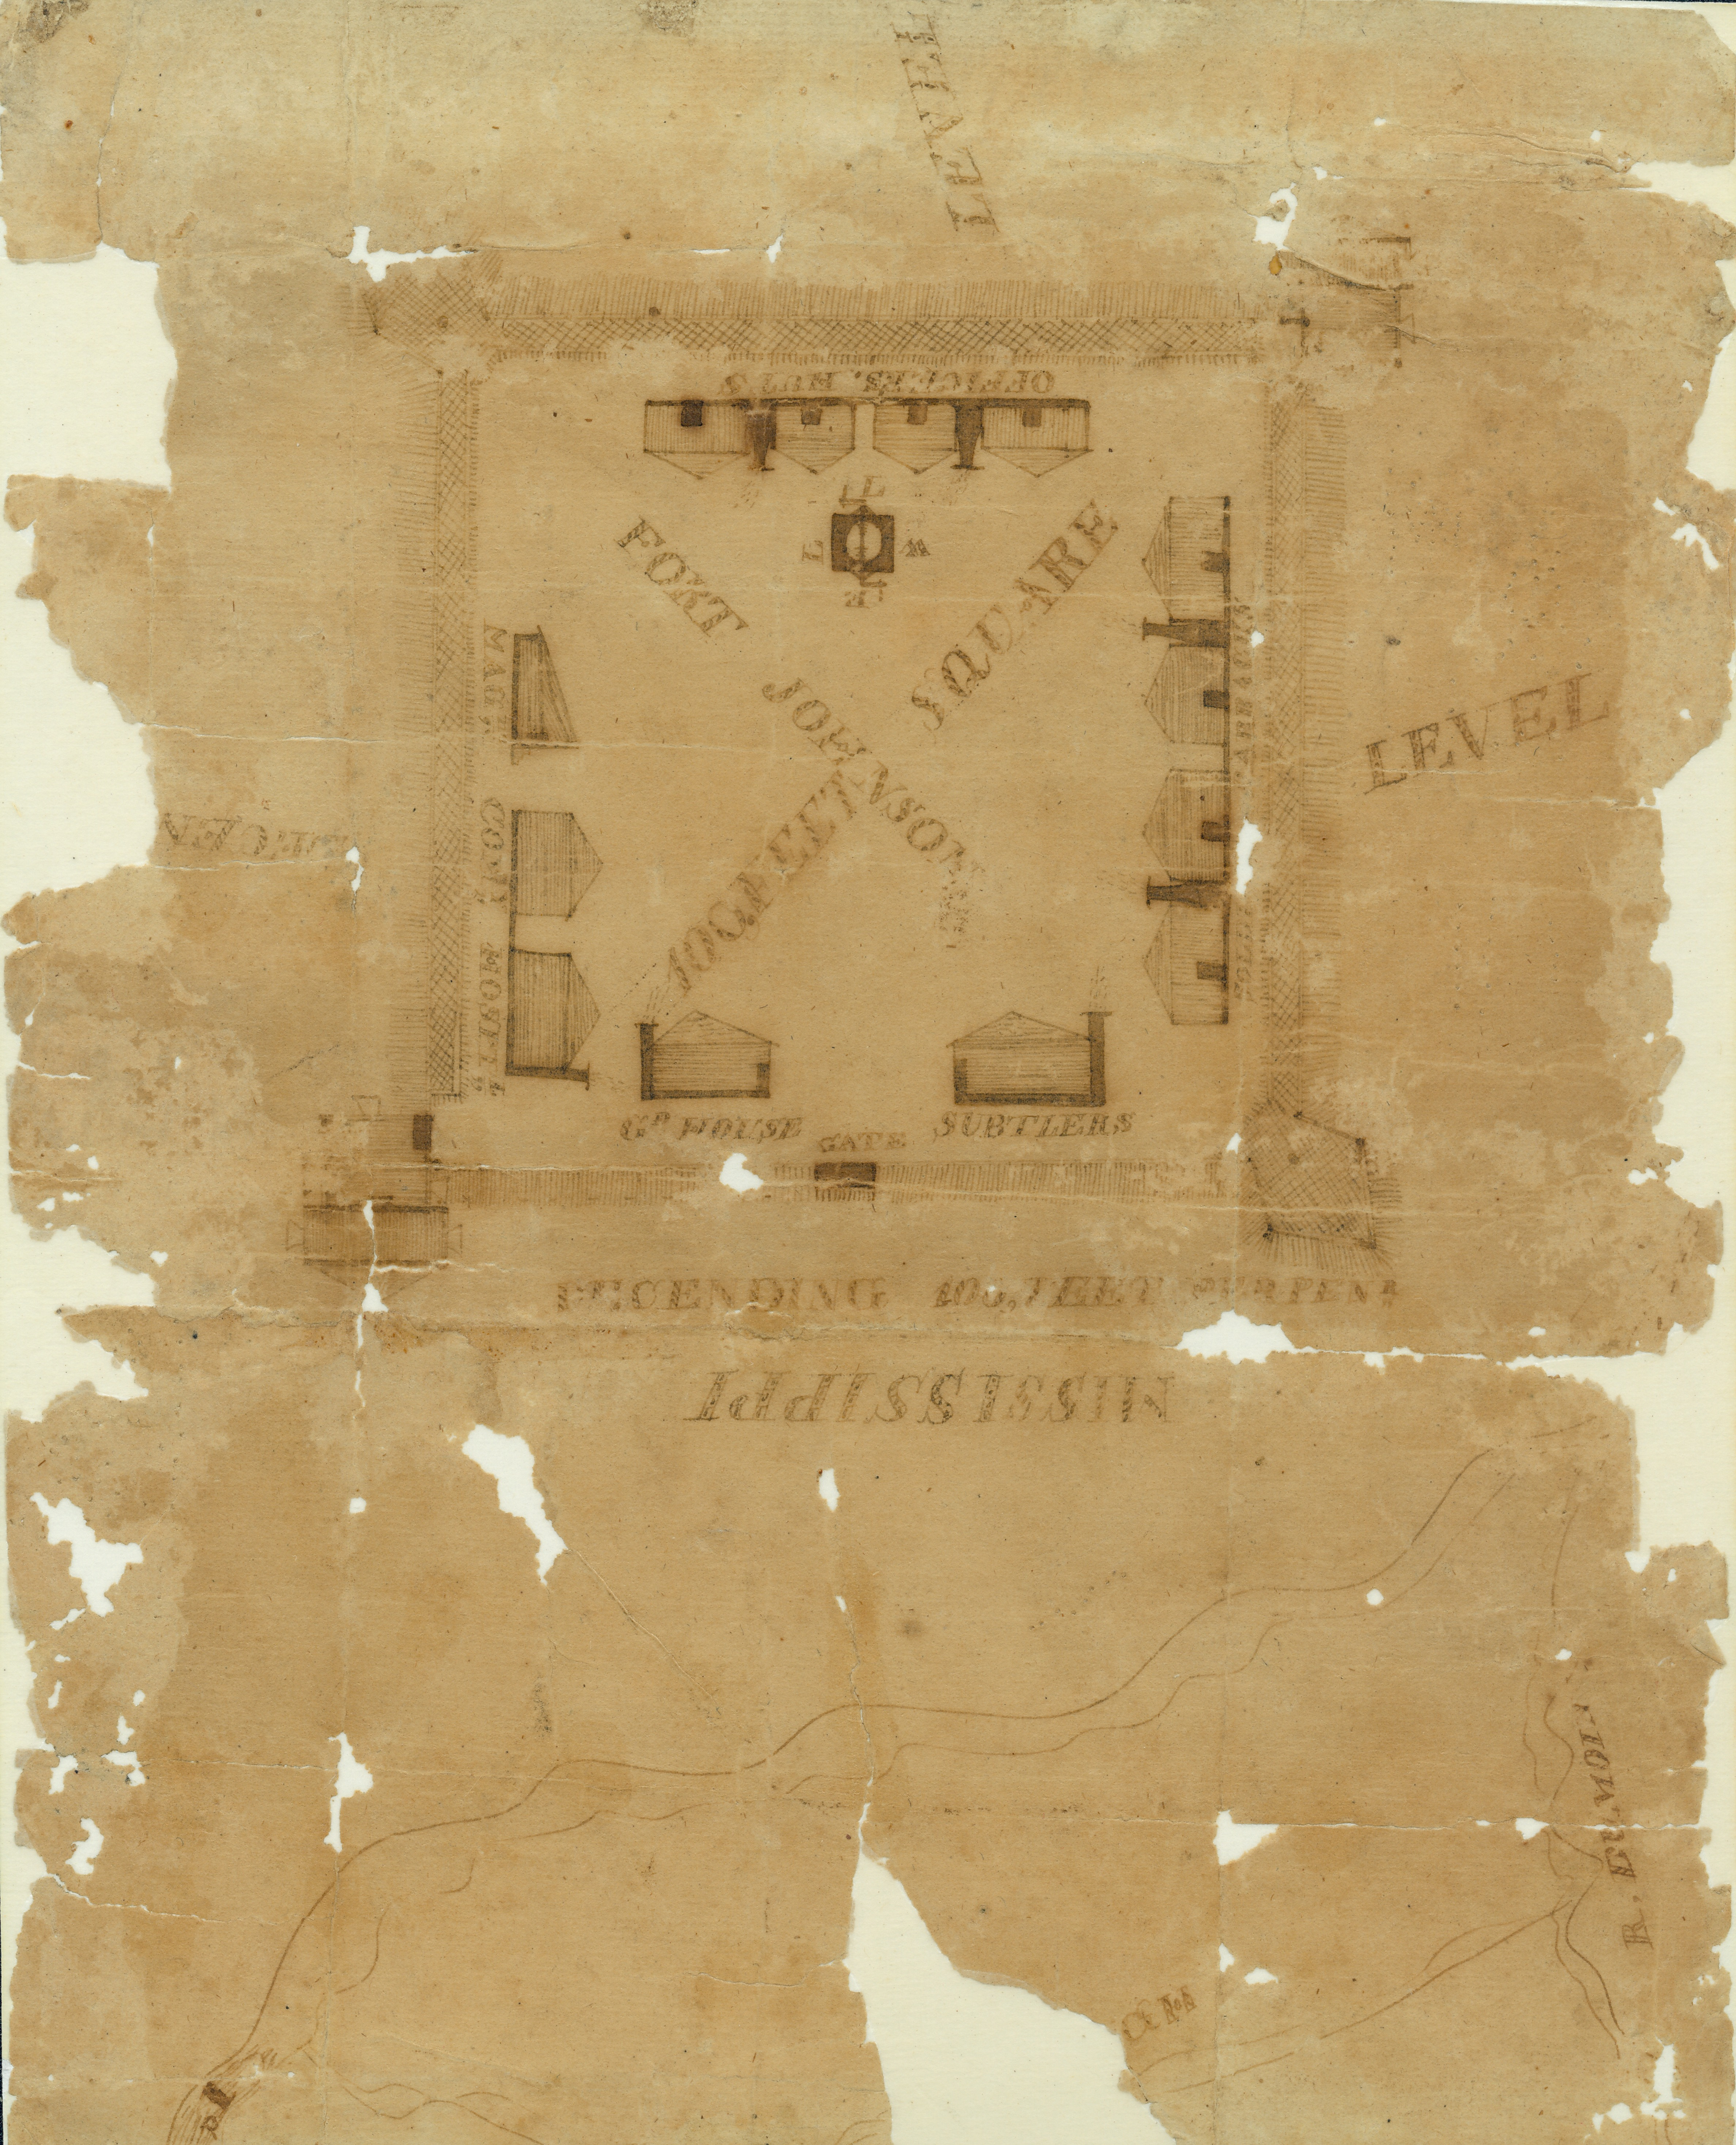 Hand Drawn Map Of Fort Johnson In Davenport Iowa During The War Of